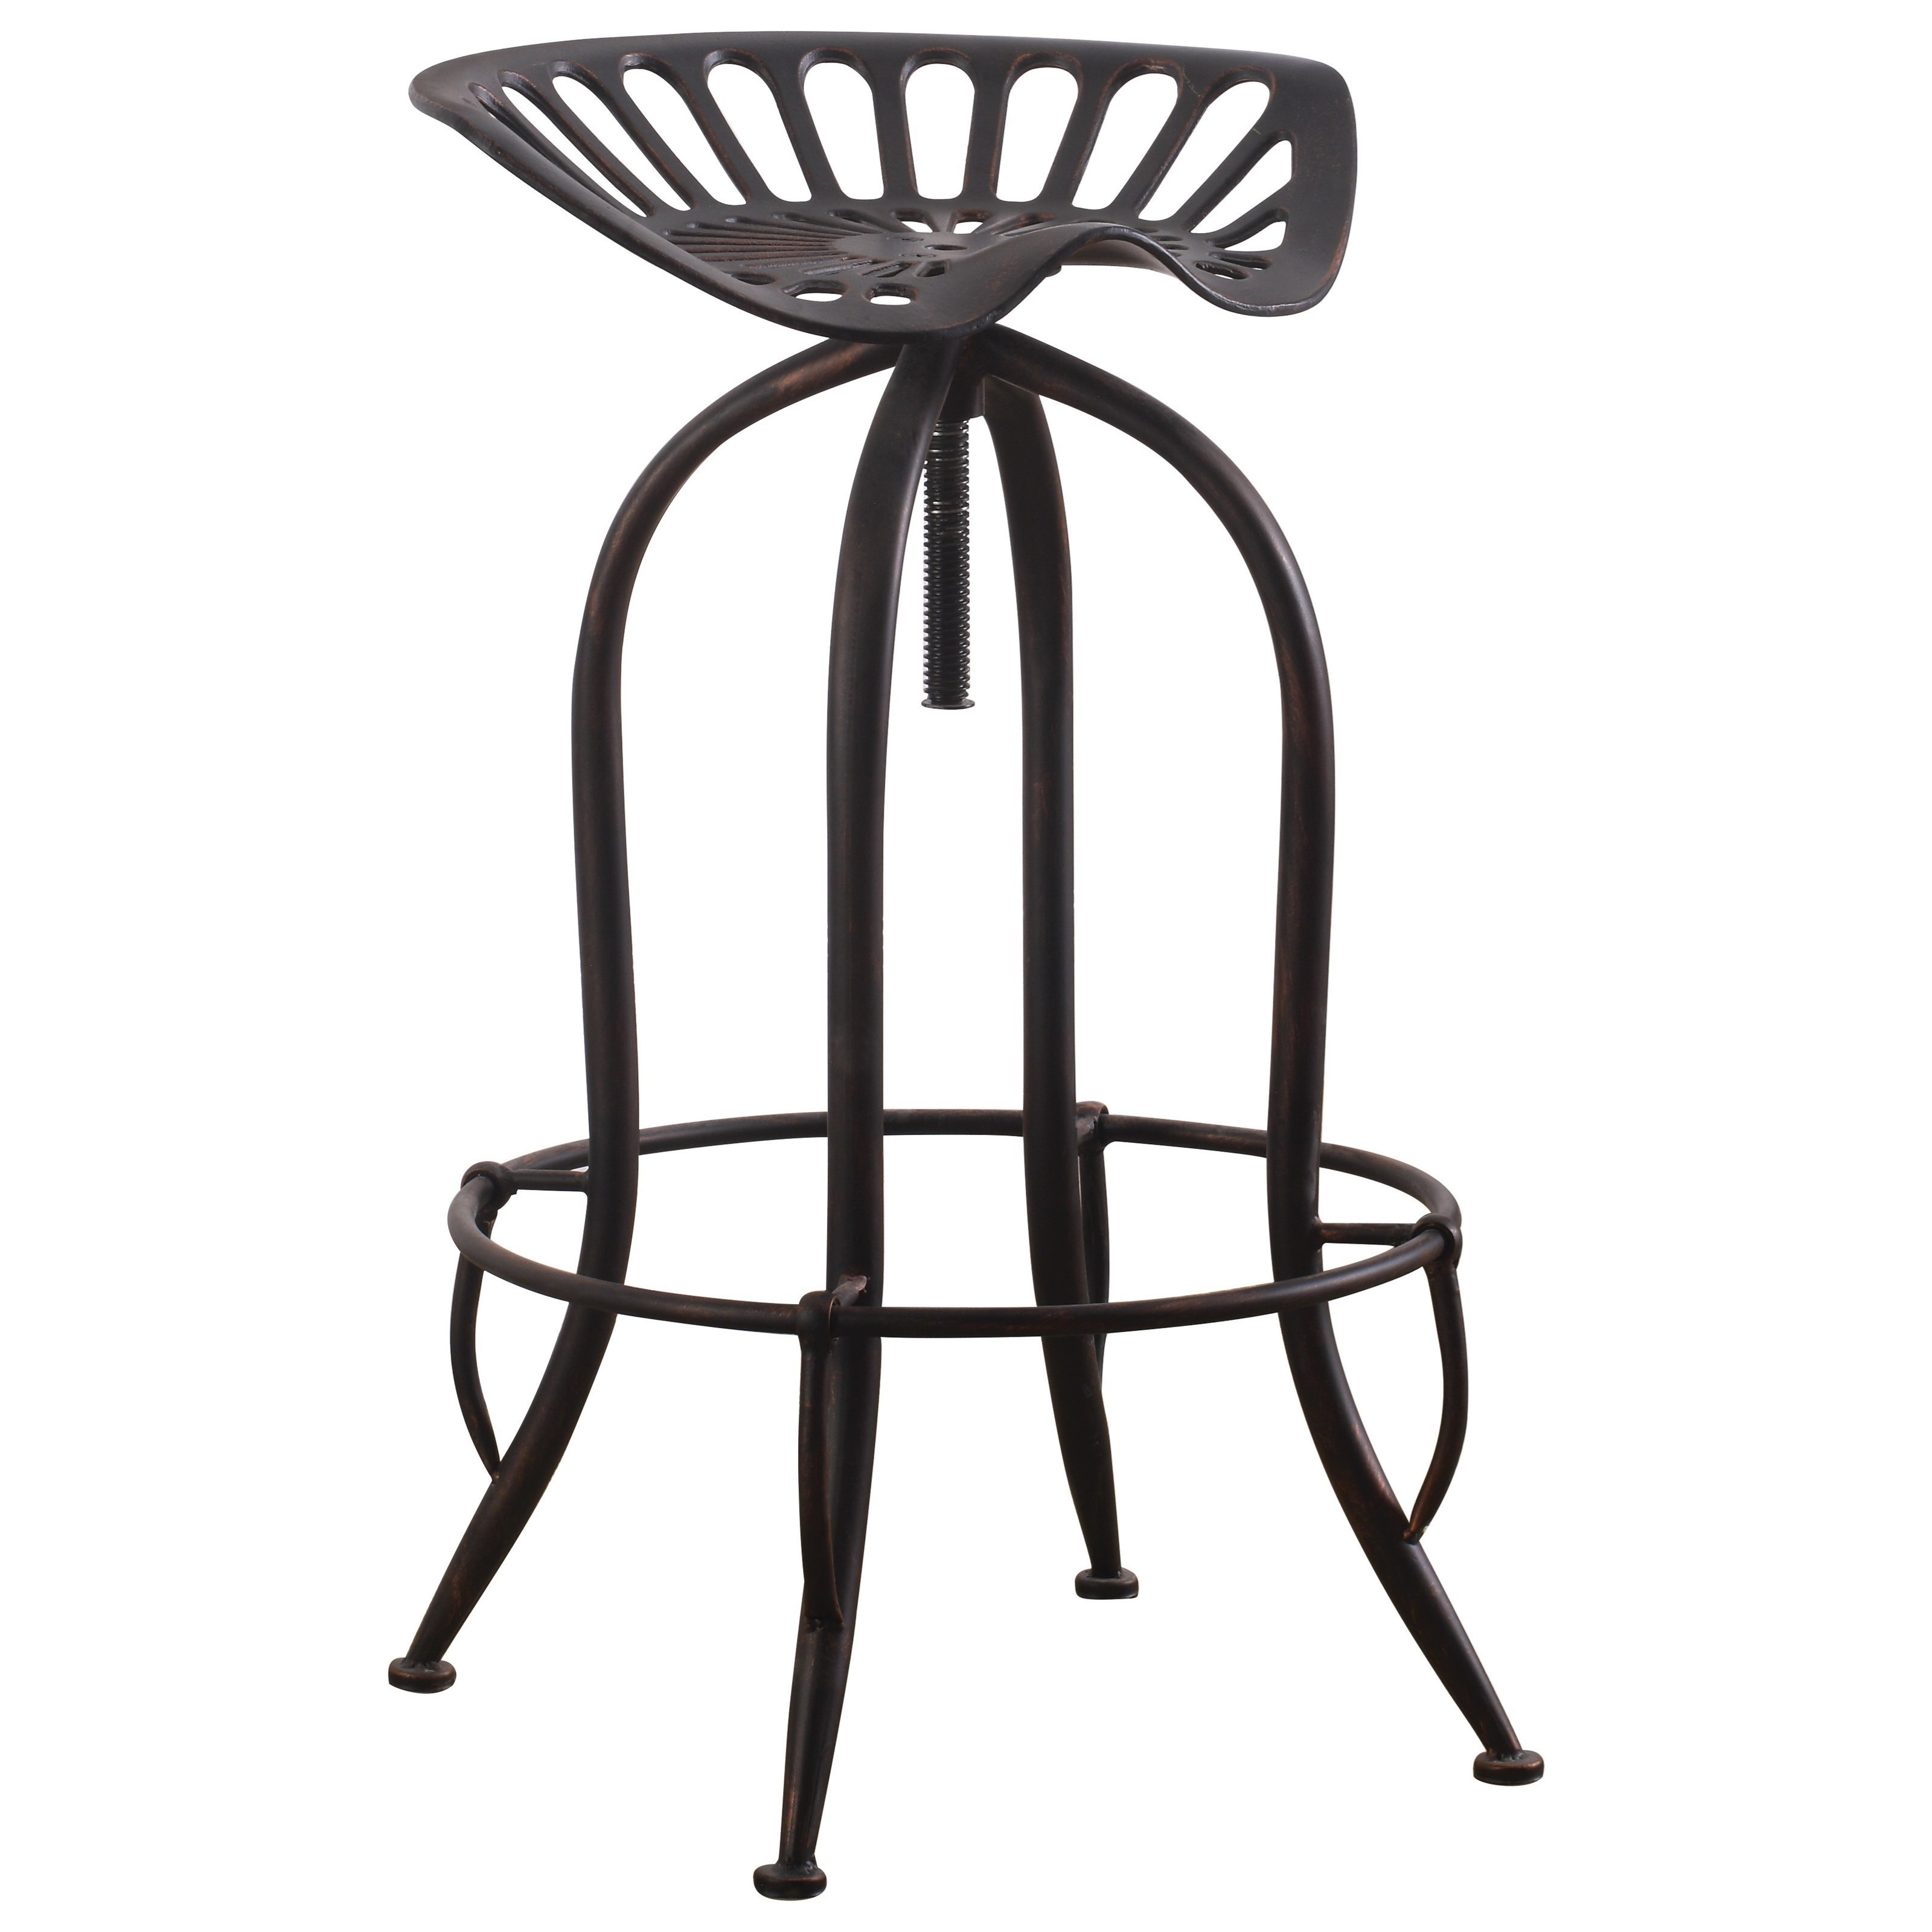 stool chair adjustable booster seat for 3 year old coaster dining chairs and bar stools 104949 metal tractor by